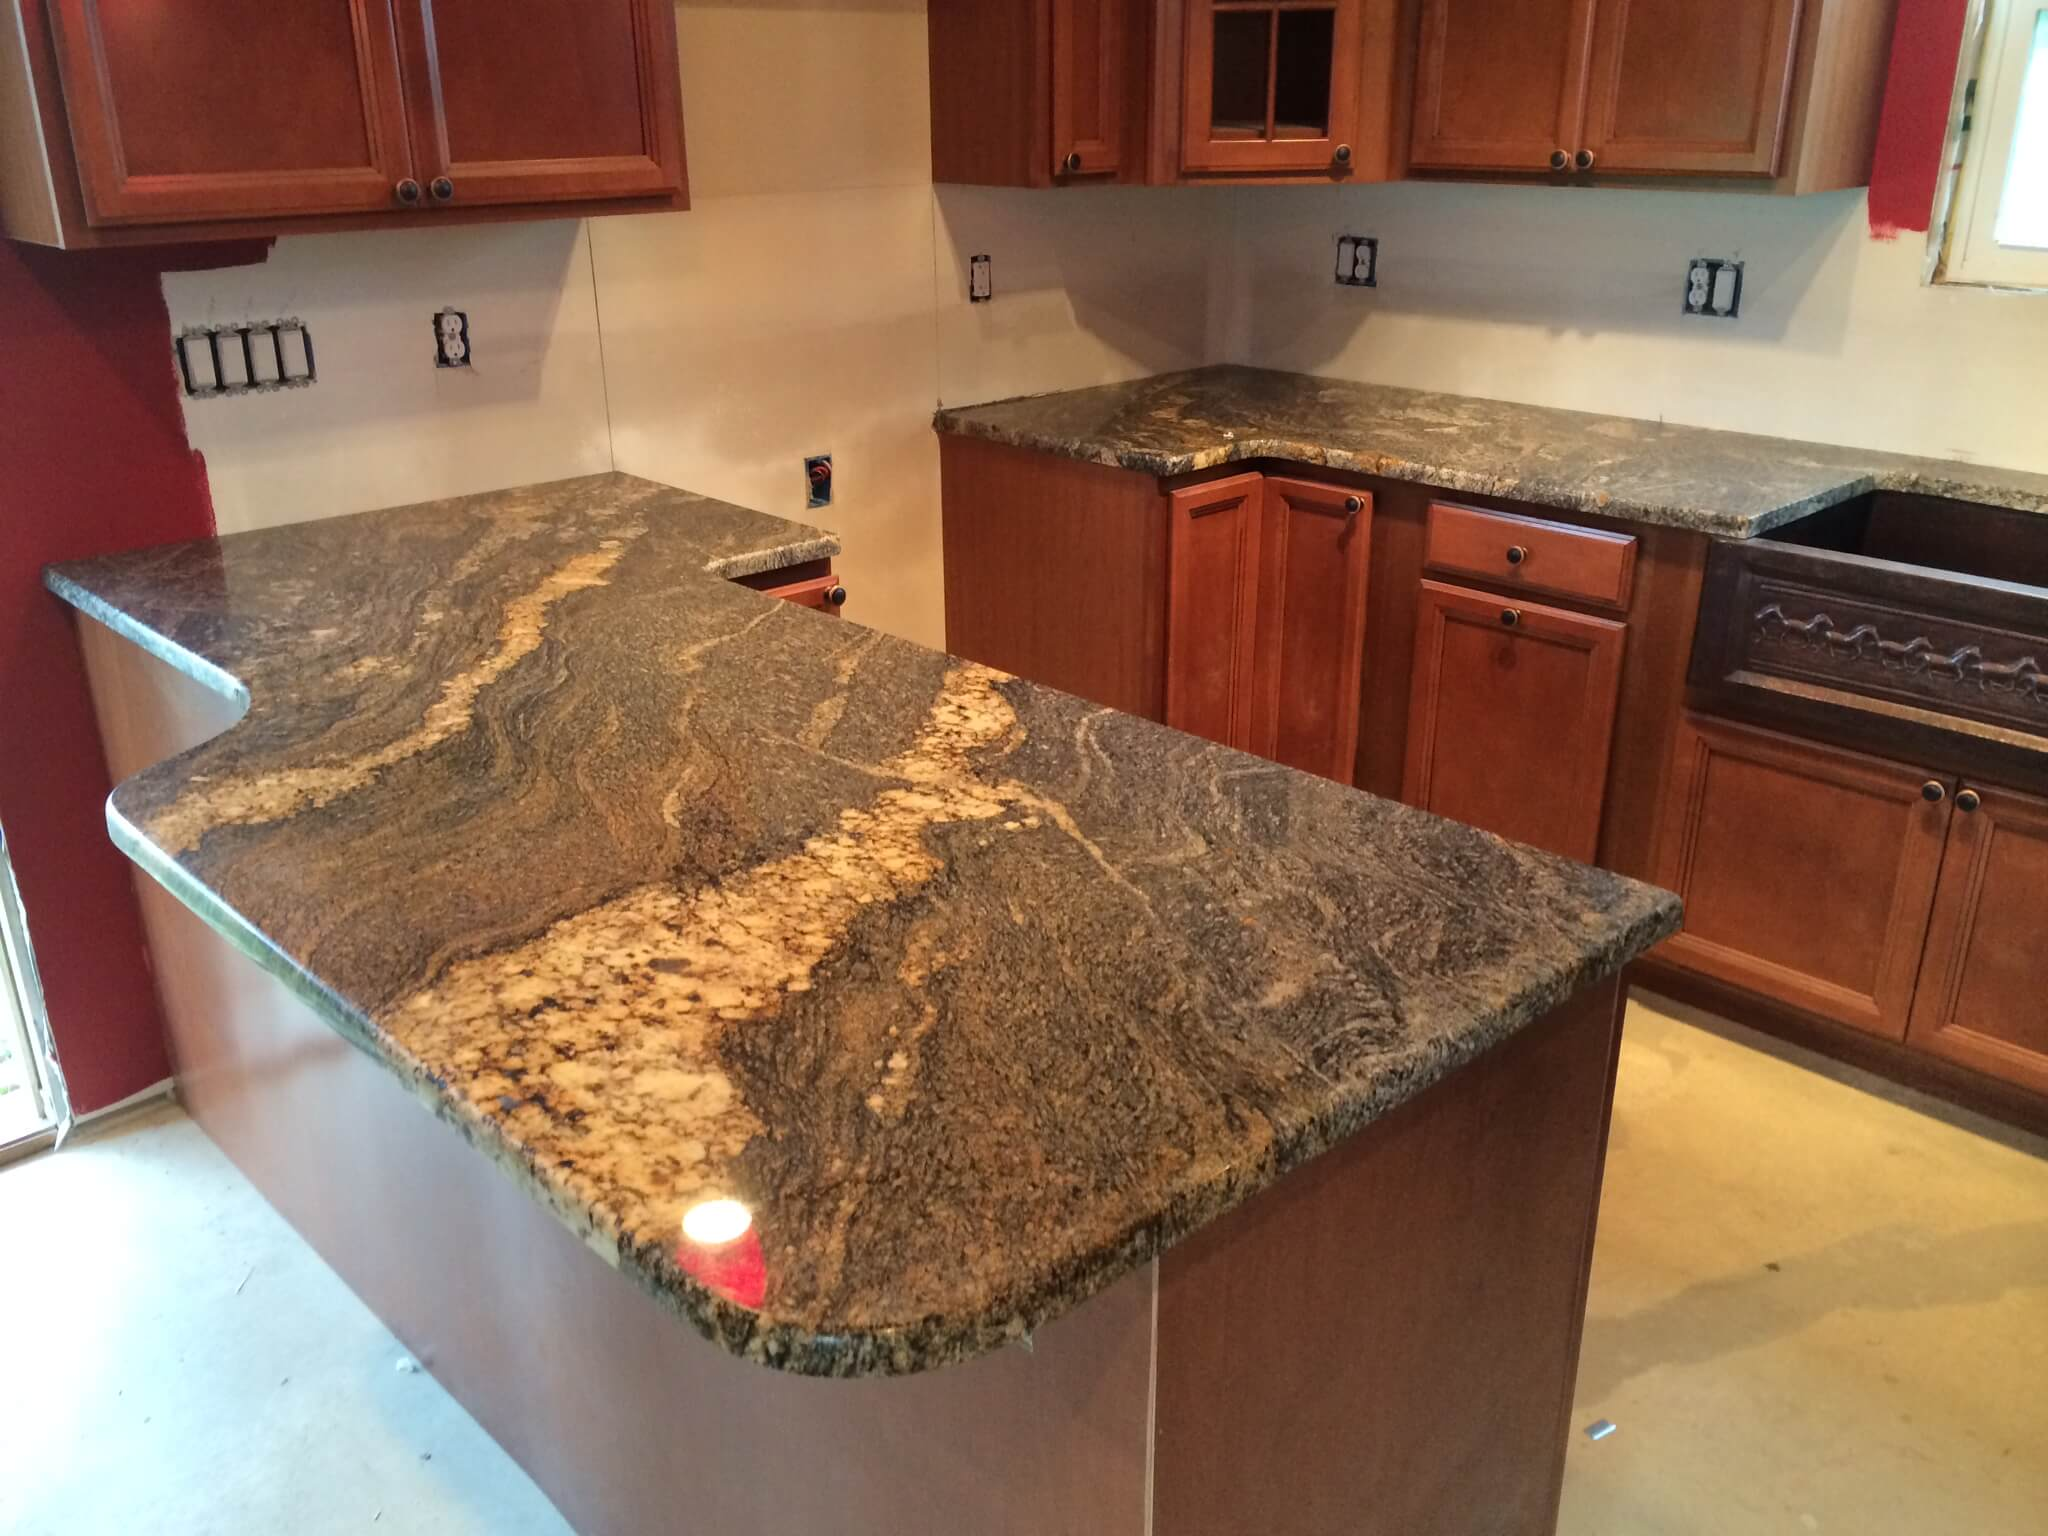 With Over 25 Years Of Experience In Granite And Marble Counter Tops, We Can  Assure Our Customers With Top Notch Craftsmanship And Quality, We Provide  Clean ...